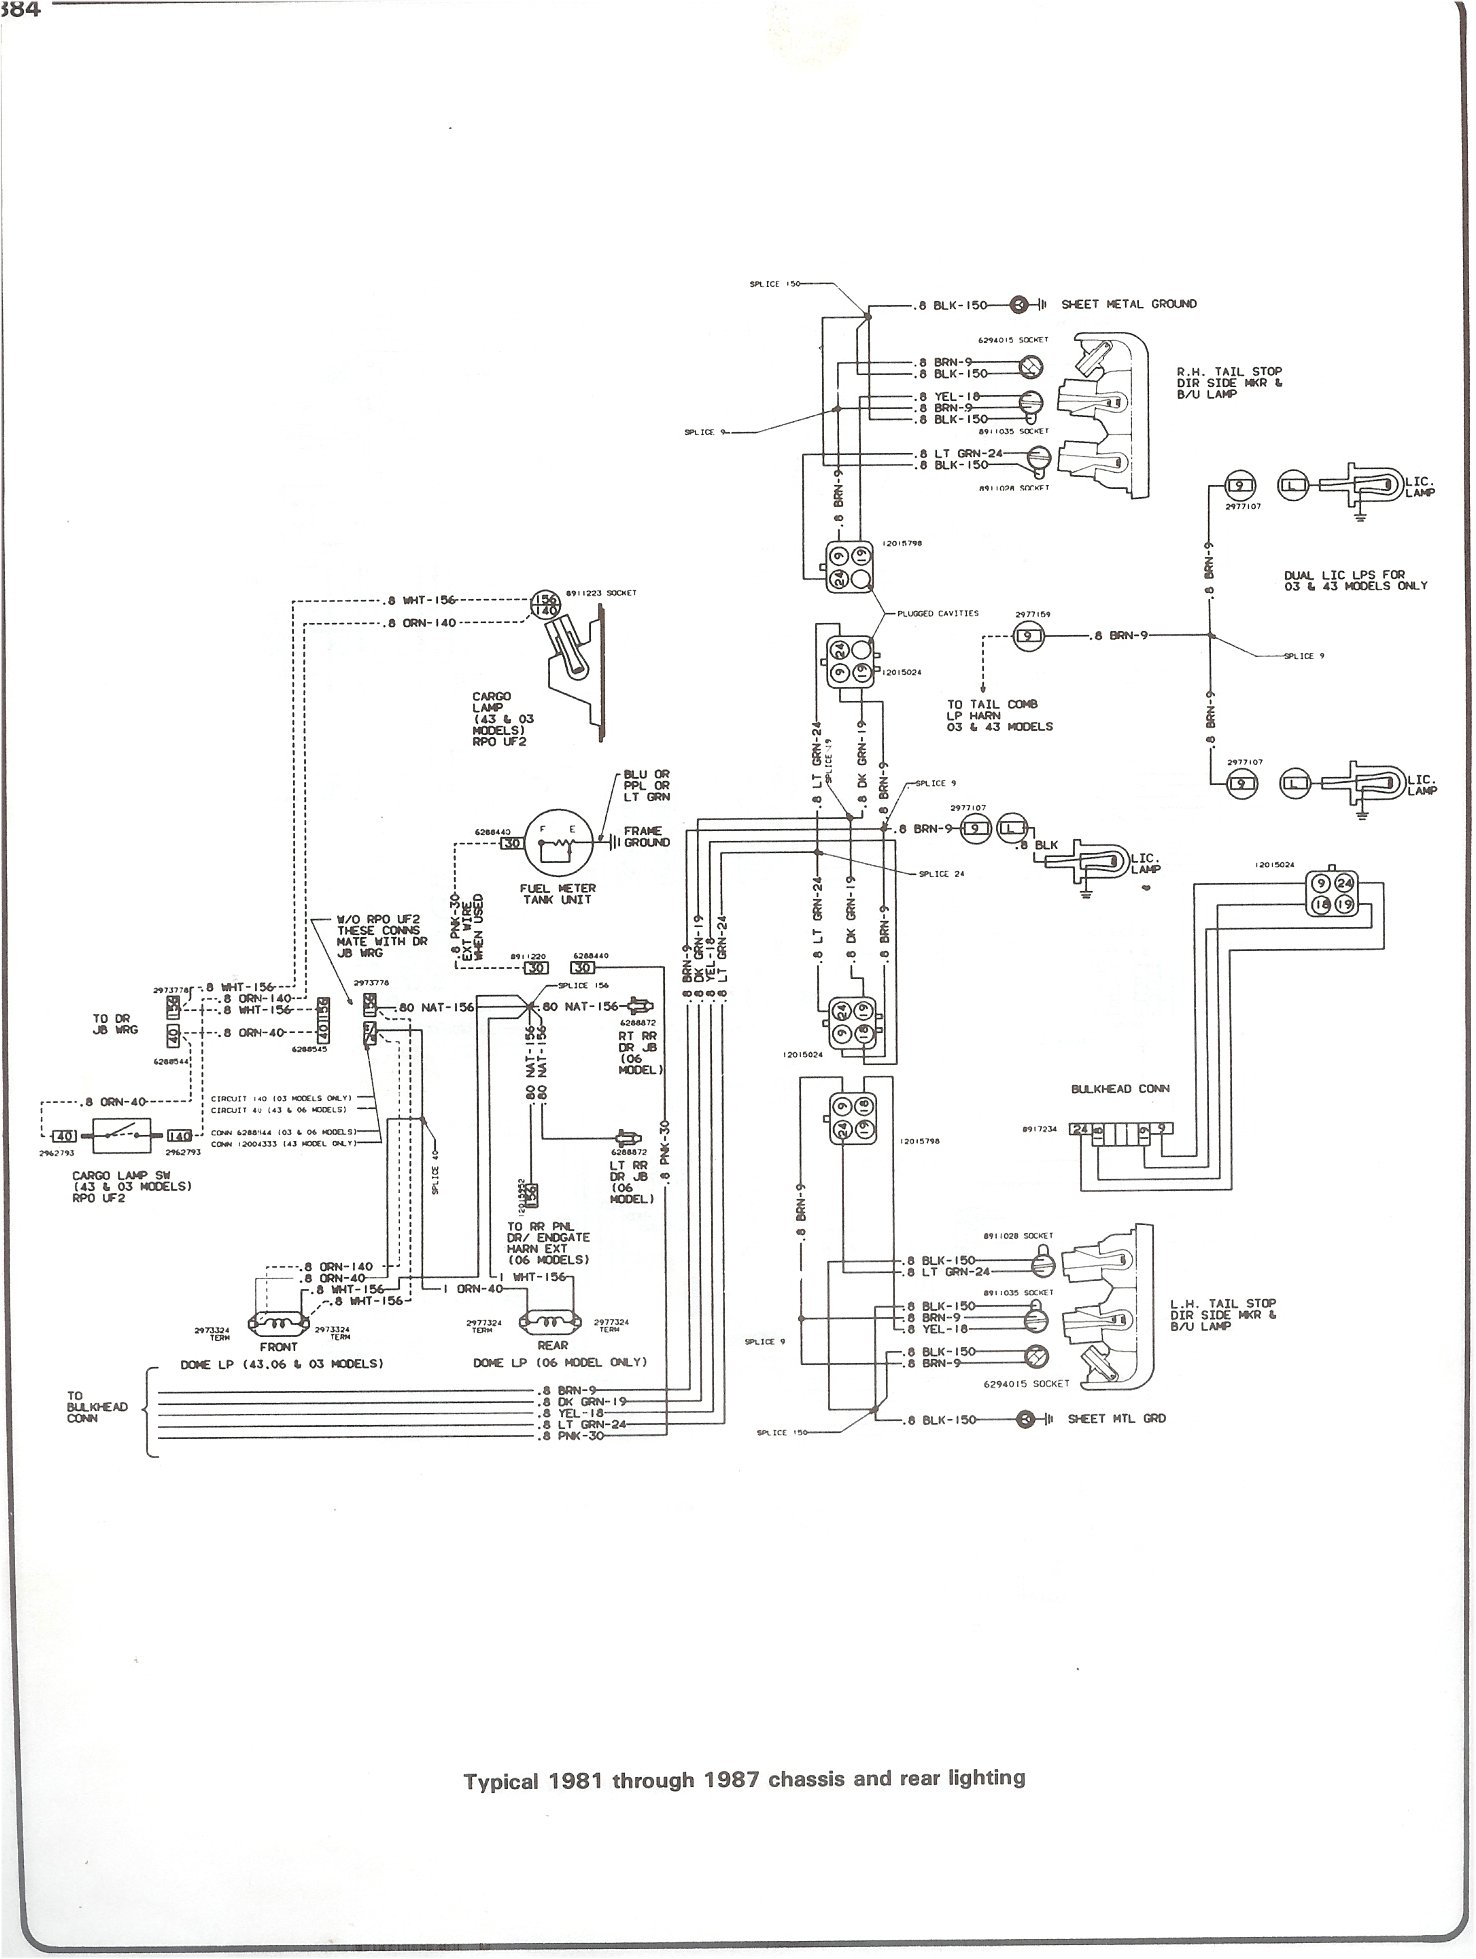 87 Gmc V3500 Tail Light Wiring Online Manuual Of Diagram 92 Cougar Complete 73 Diagrams Rh Forum 87chevytrucks Com 2011